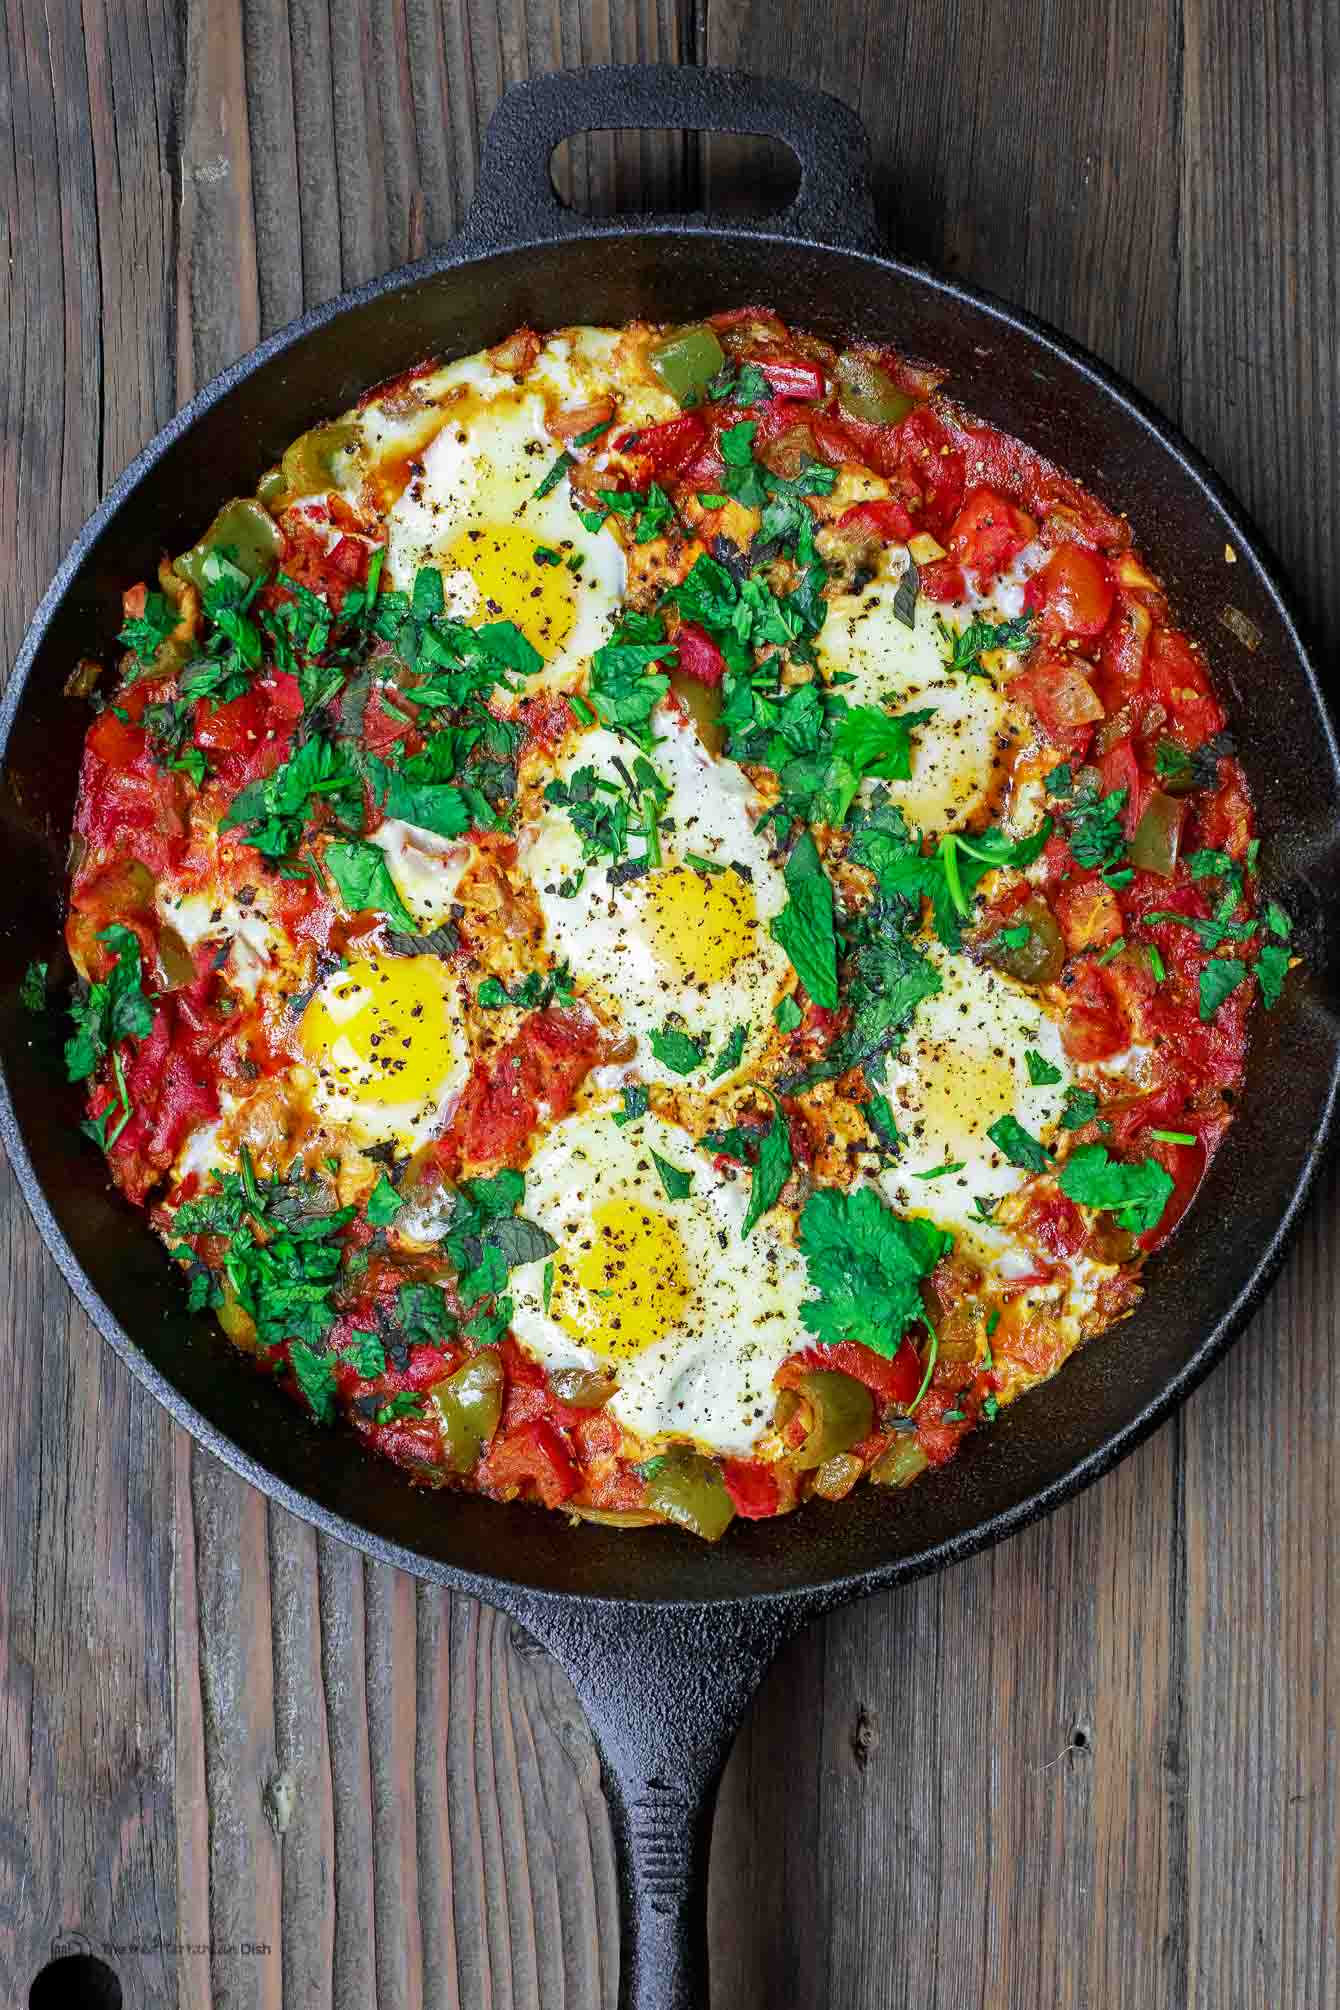 Simple Shakshuka Recipe | The Mediterranean Dish. Shakshuka is a delicious Middle Eastern dish of eggs poached in a spiced, saucy tomato stew. Perfect for breakfast, lunch or dinner! All you need to add is your favorite bread. This is a simple vegetarian recipe that you can make in less than 30 minutes! My family's favorite. And feeds a crowd on a small budget. See the recipe on TheMediterraneanDish.com